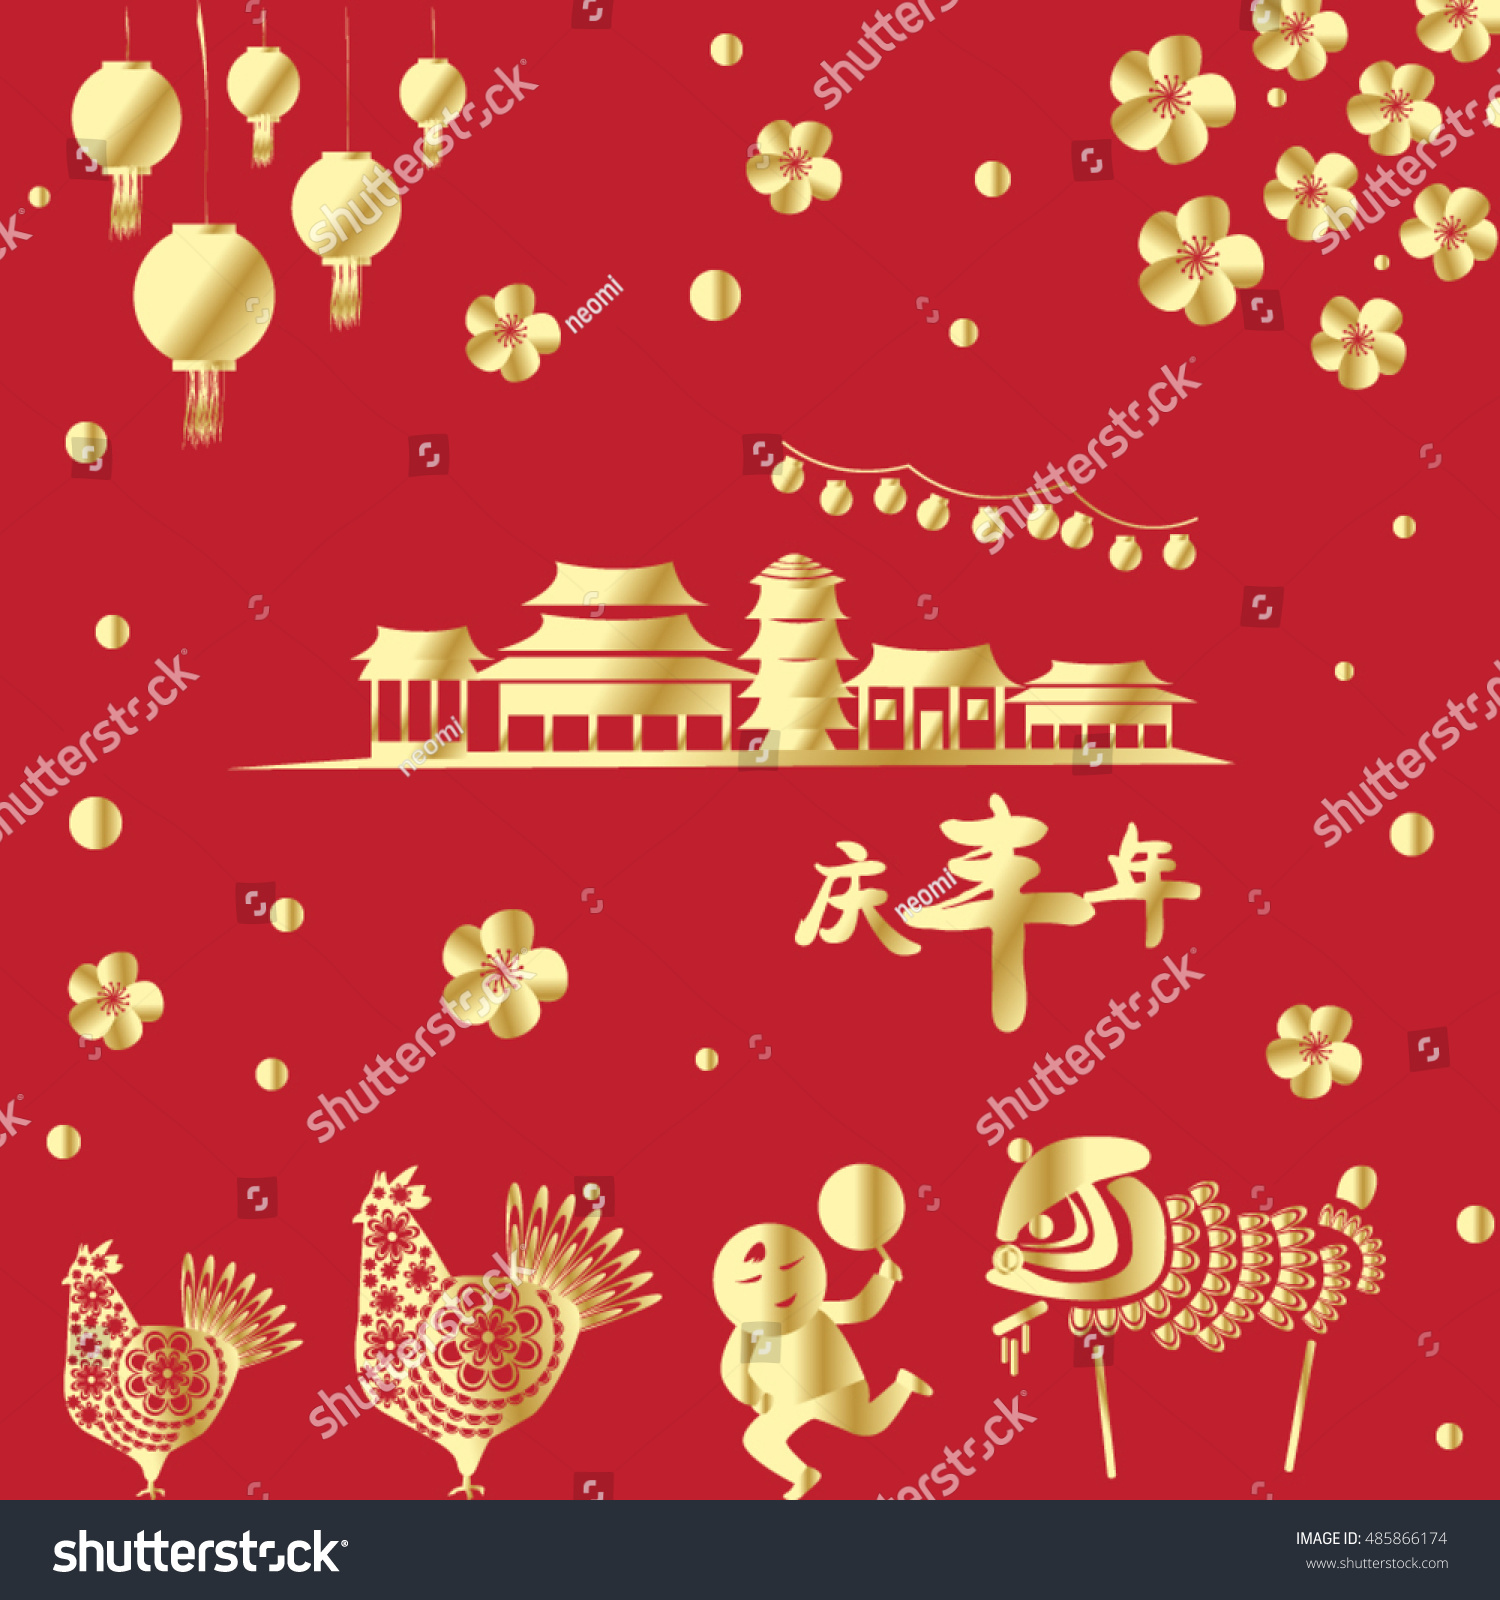 Classic design chinese new year 2017 stock photo photo vector classic design for chinese new year 2017 the year of rooster chinese wording are m4hsunfo